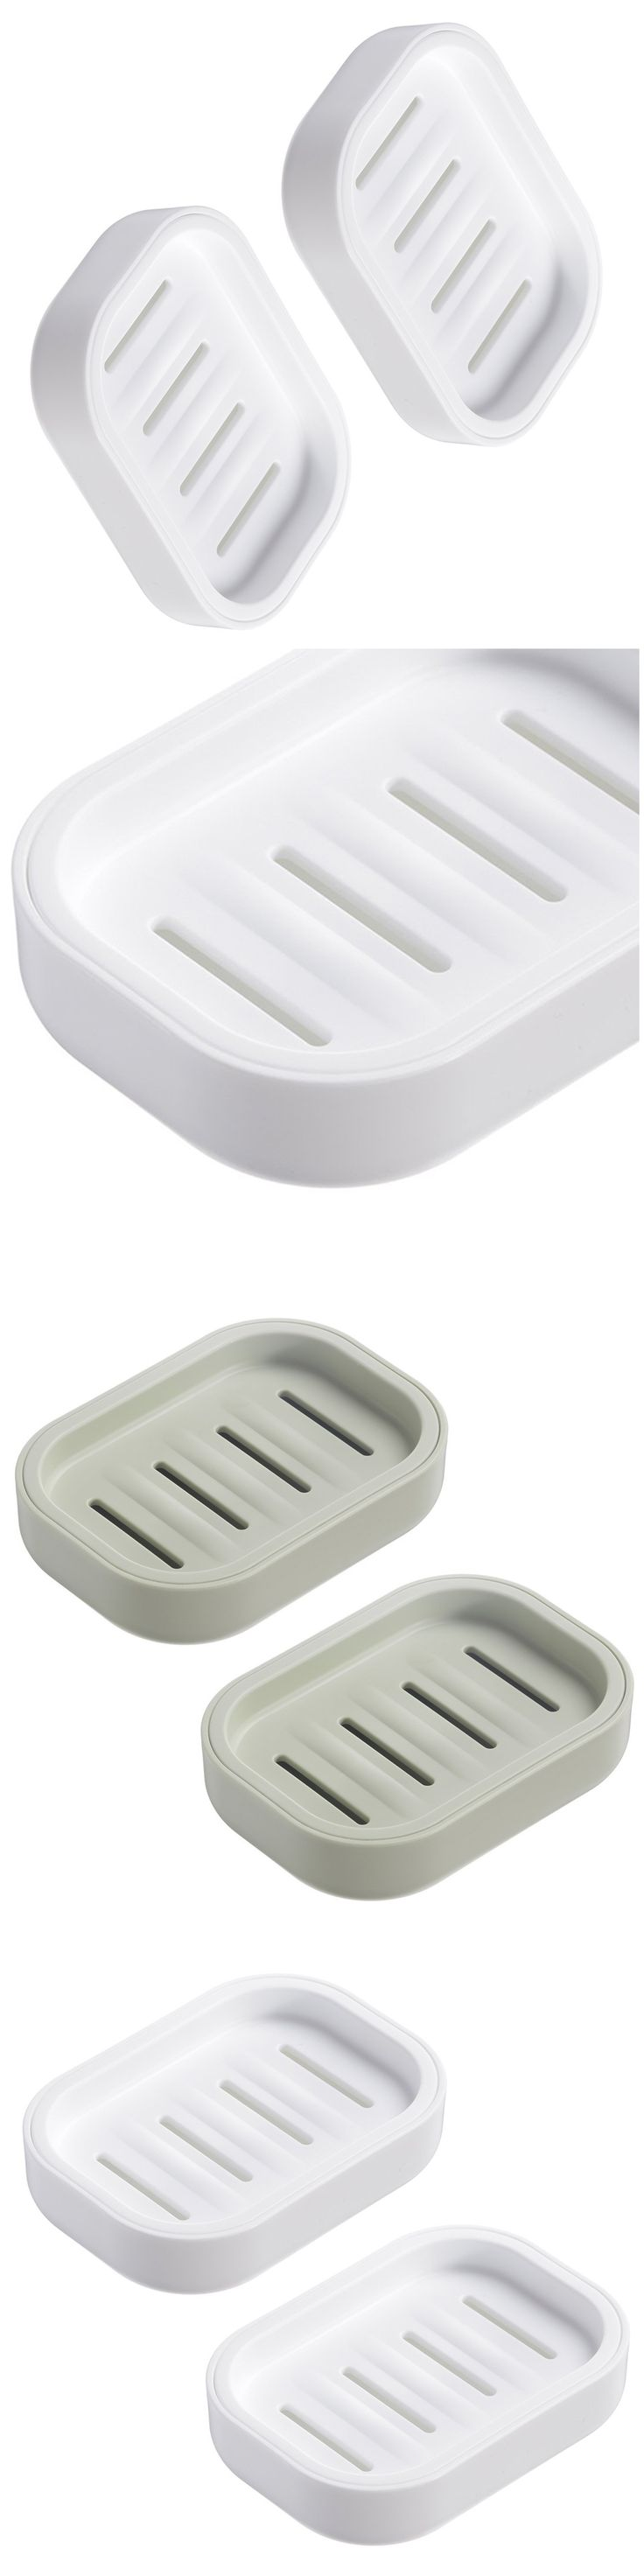 PP Plastic Soap Box Soap Container Keeps Soap Dry Easy Cleaning Drain (White 2 pack)